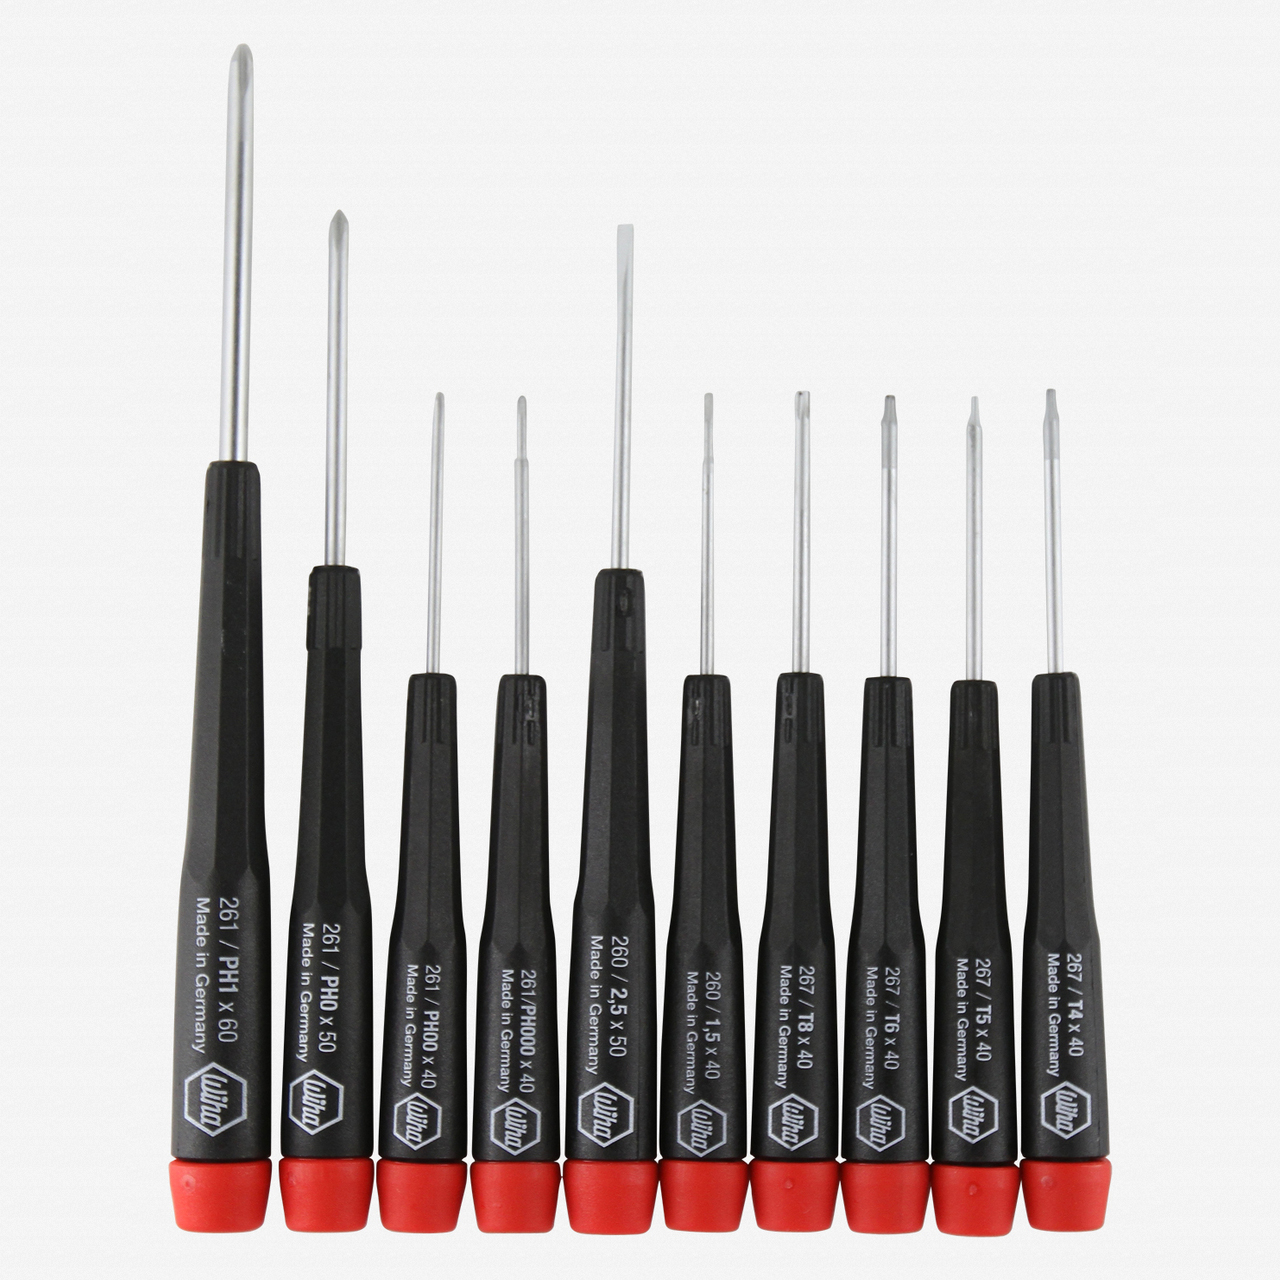 Wiha Custom 10 Piece Precision Slotted, Phillips, and Torx Technician Set - KC Tool